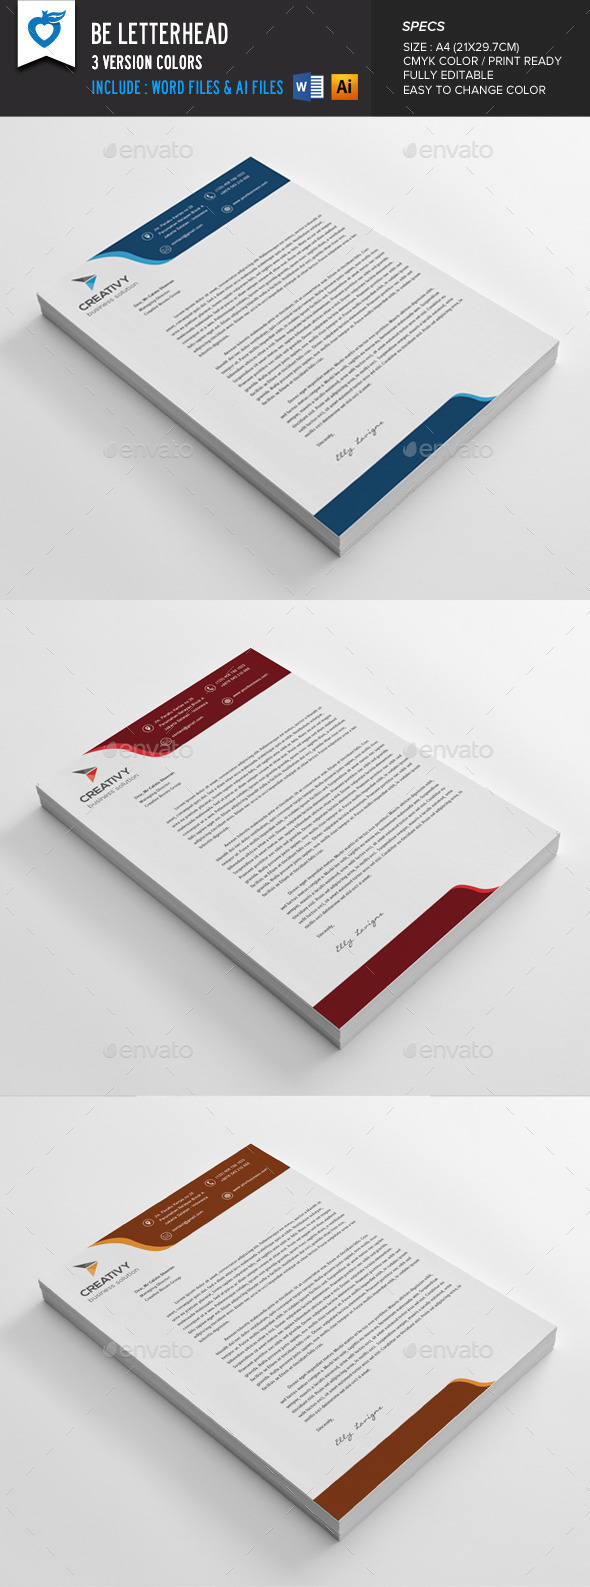 12 free letterhead templates in psd ms word and pdf format letterhead template fbccfo Image collections